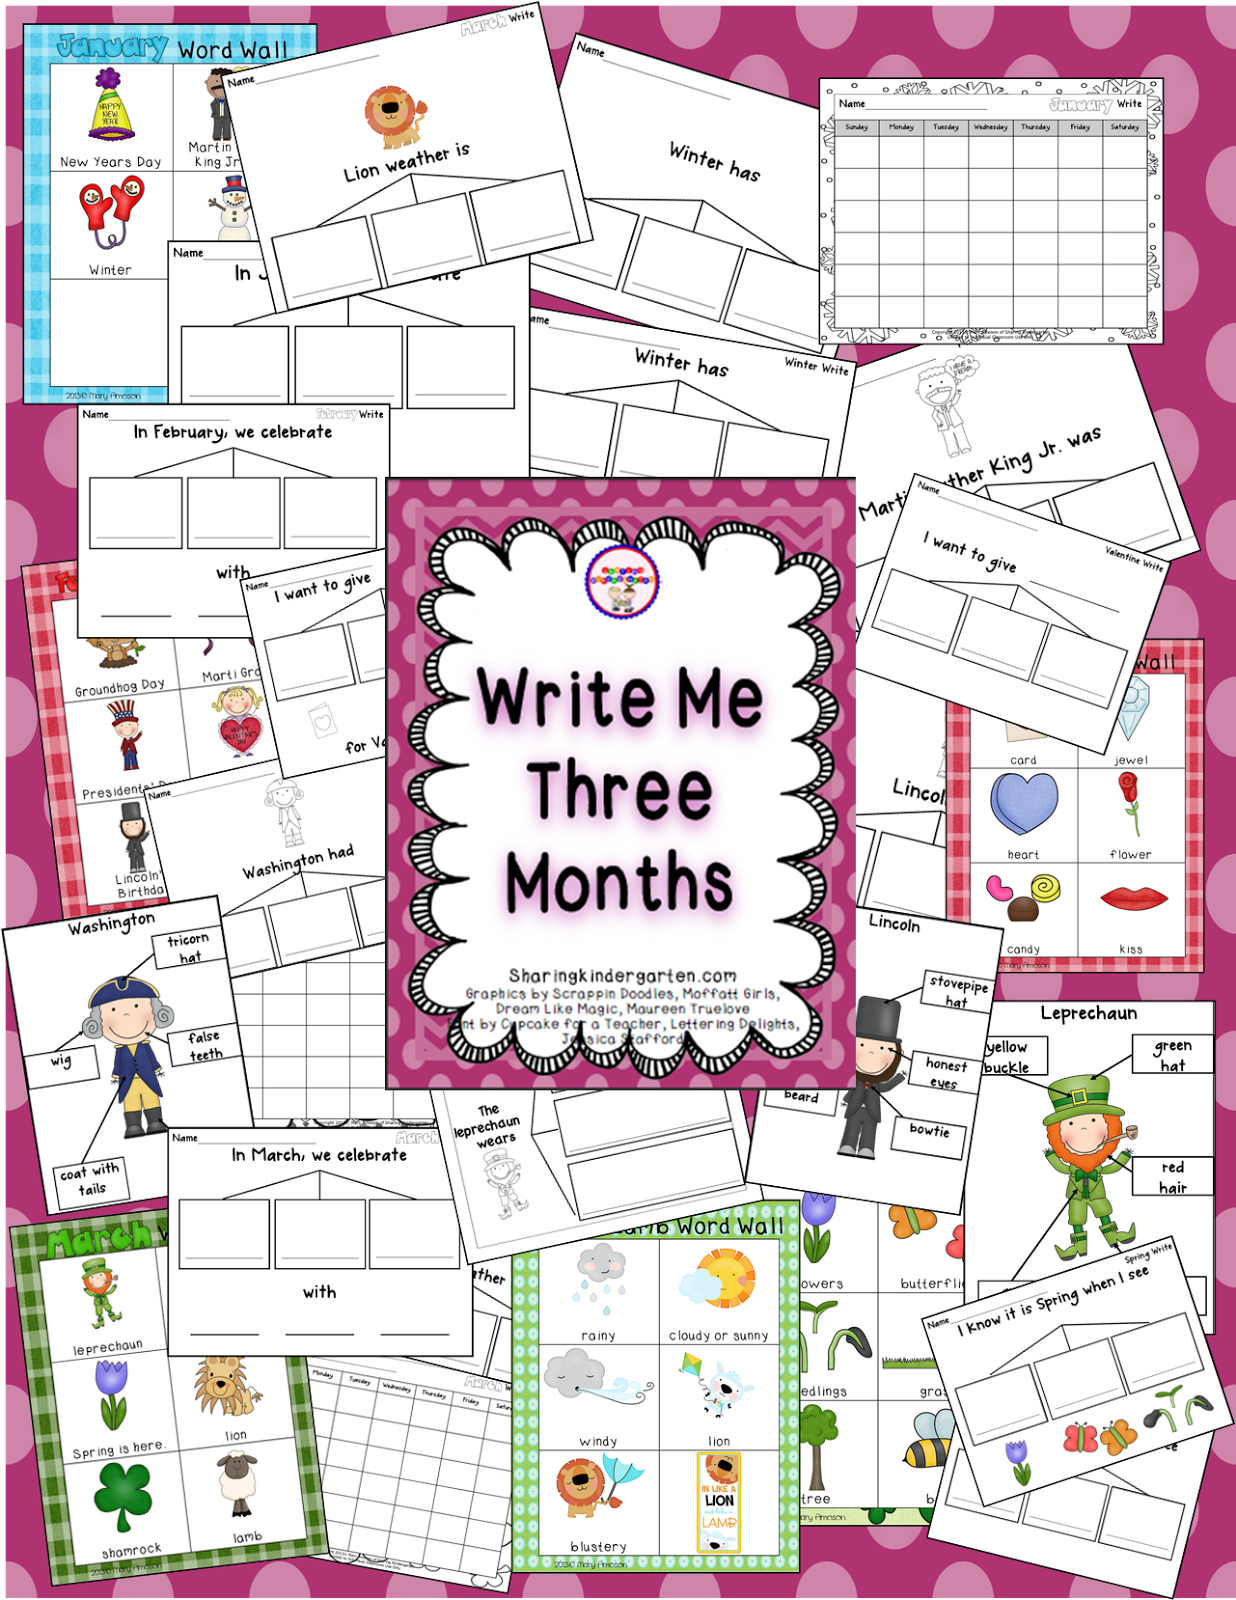 http://www.teacherspayteachers.com/Product/Write-Me-Three-Months-636707